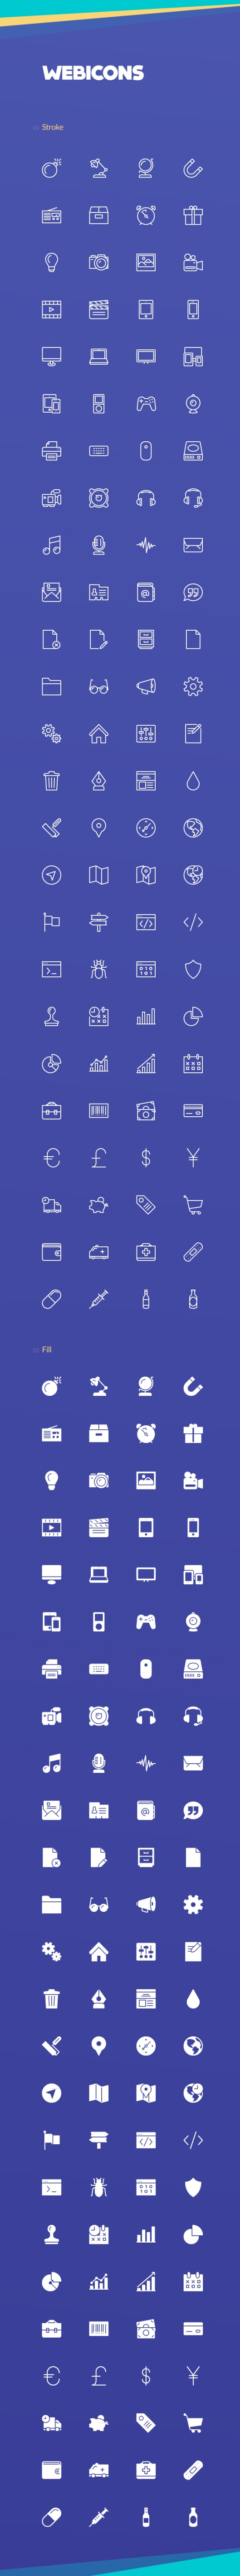 Webicons-100-Stroke-Fill-Icons